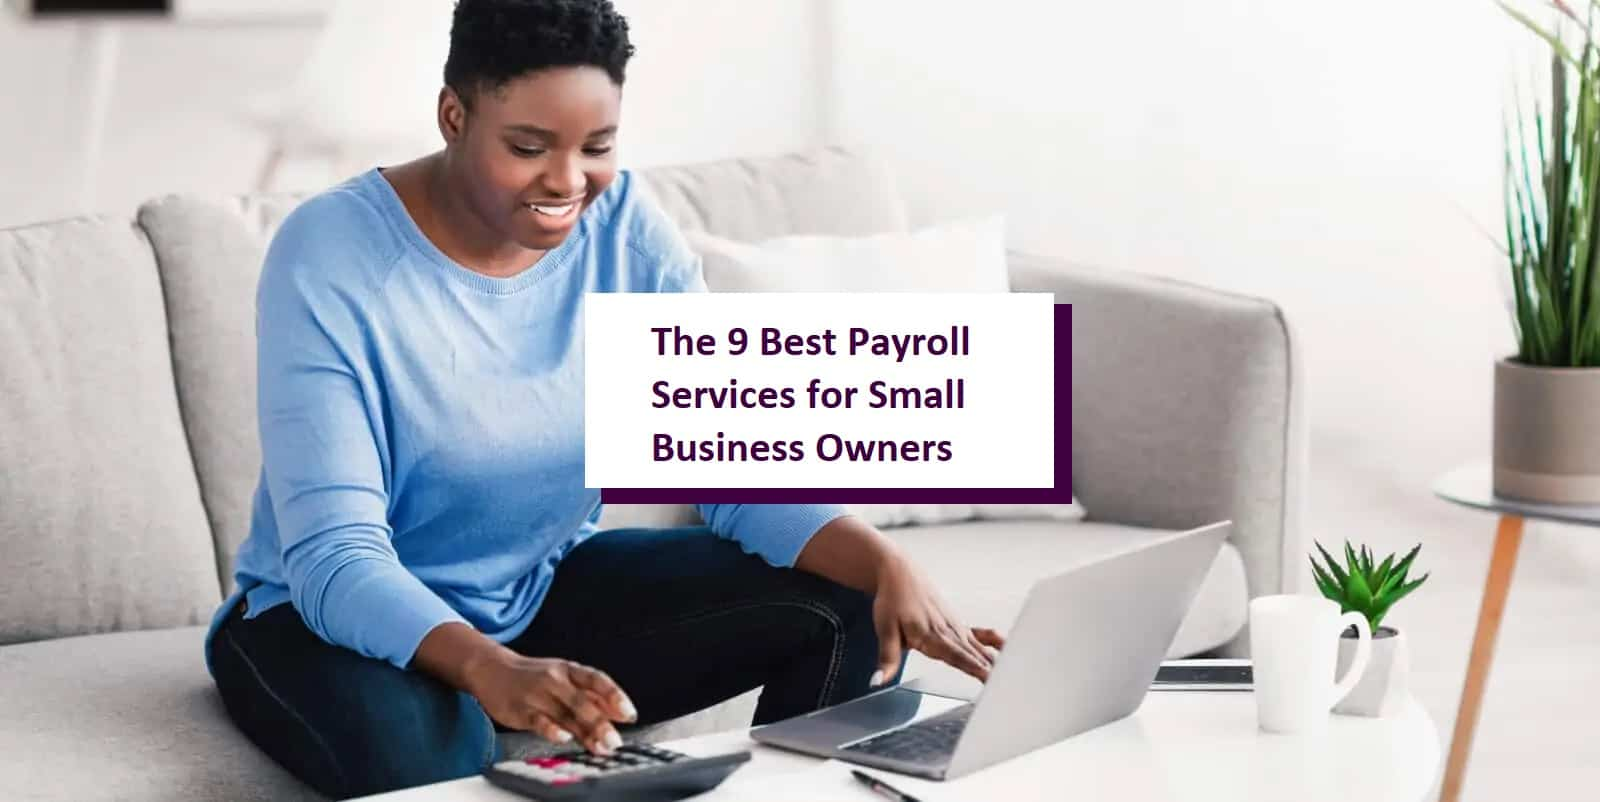 The 9 Best Payroll Services for Small Business Owners